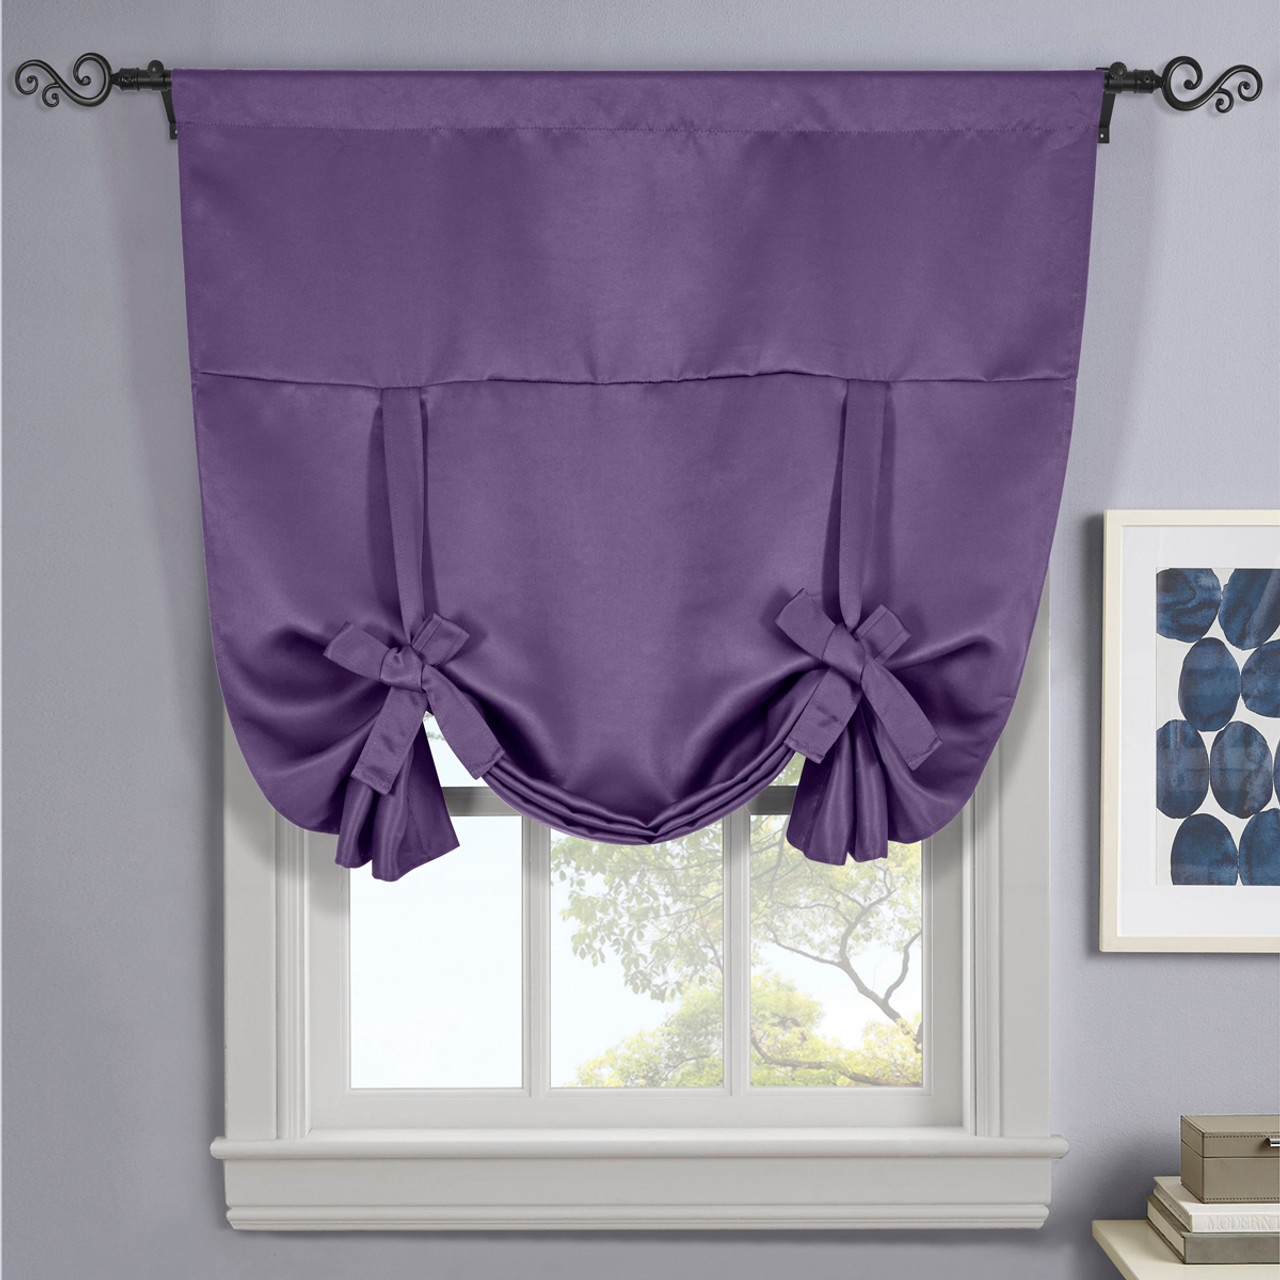 ava blackout weave curtains rod pocket tie up shade for small window. Black Bedroom Furniture Sets. Home Design Ideas